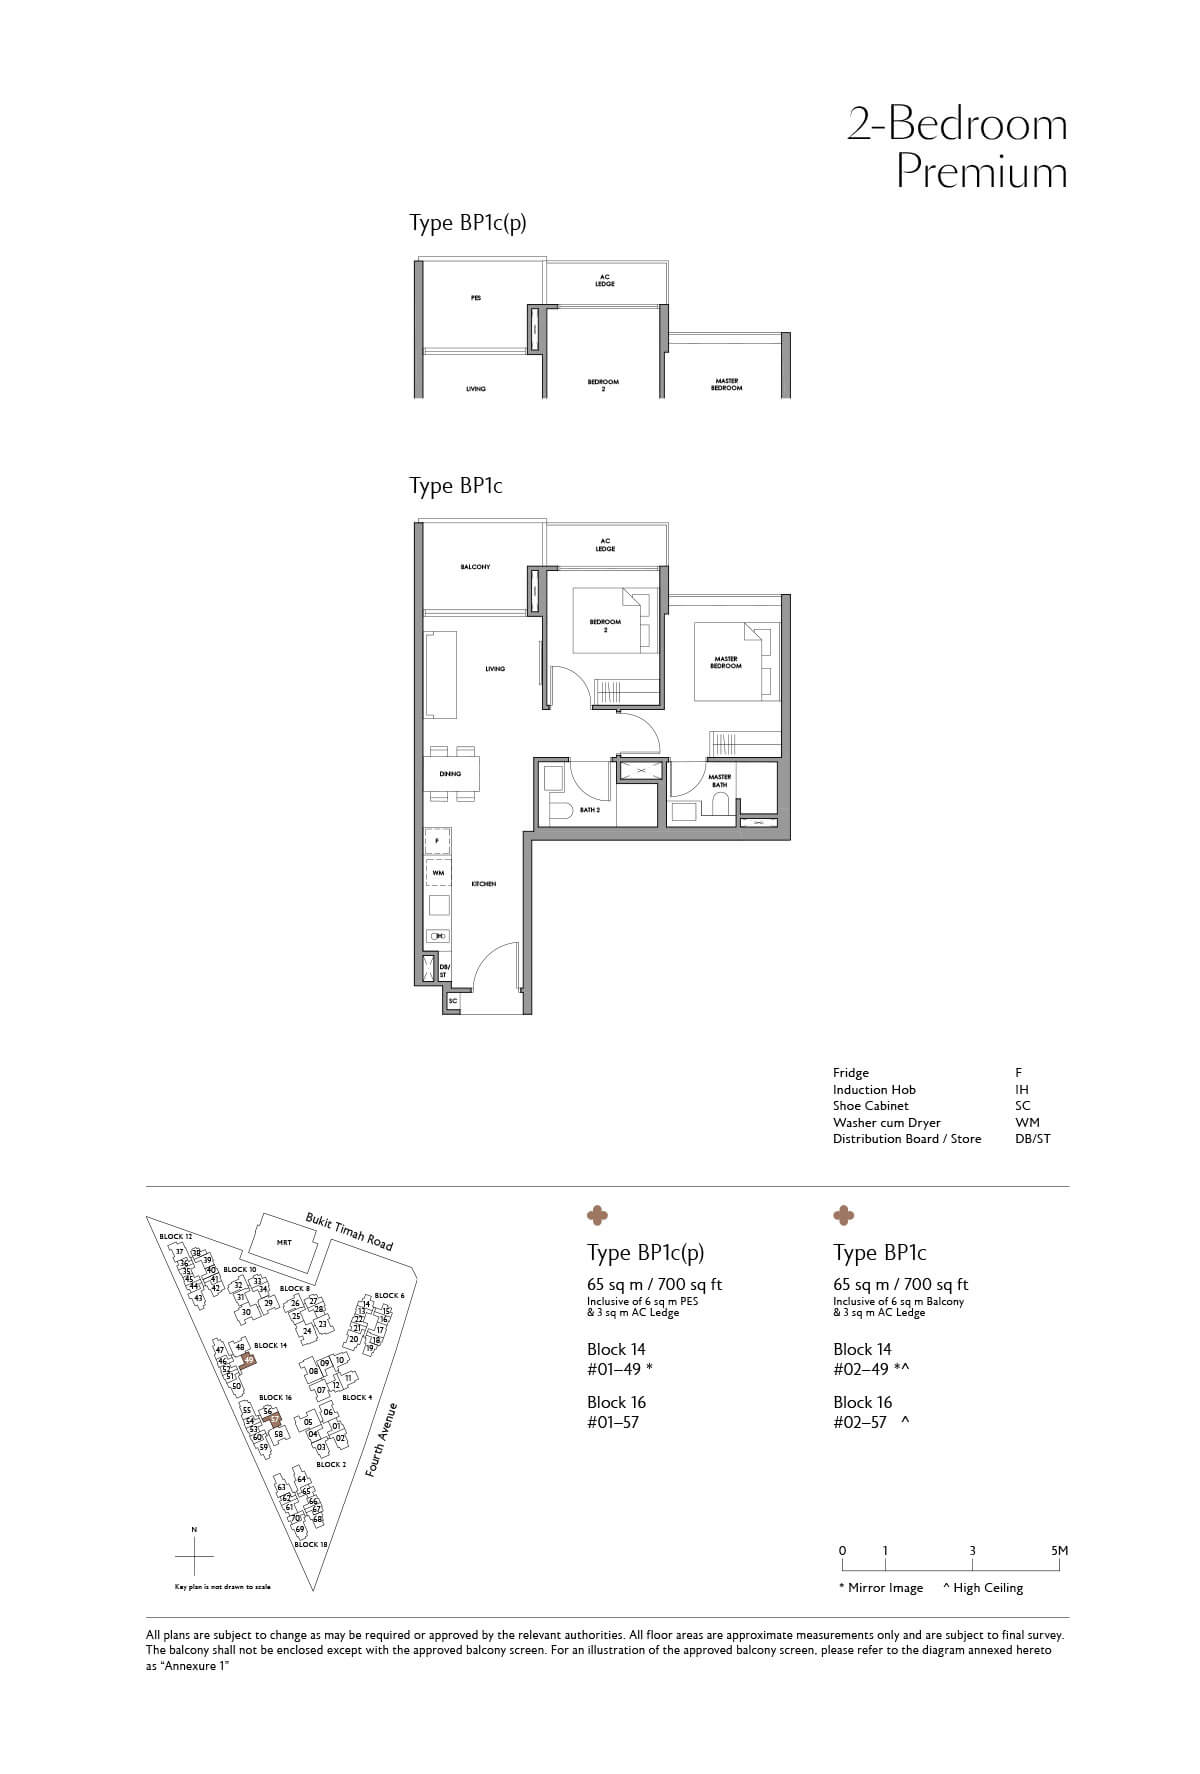 Fourth Avenue Residences Floor Plan 2 Bedroom Premium Type BP1c